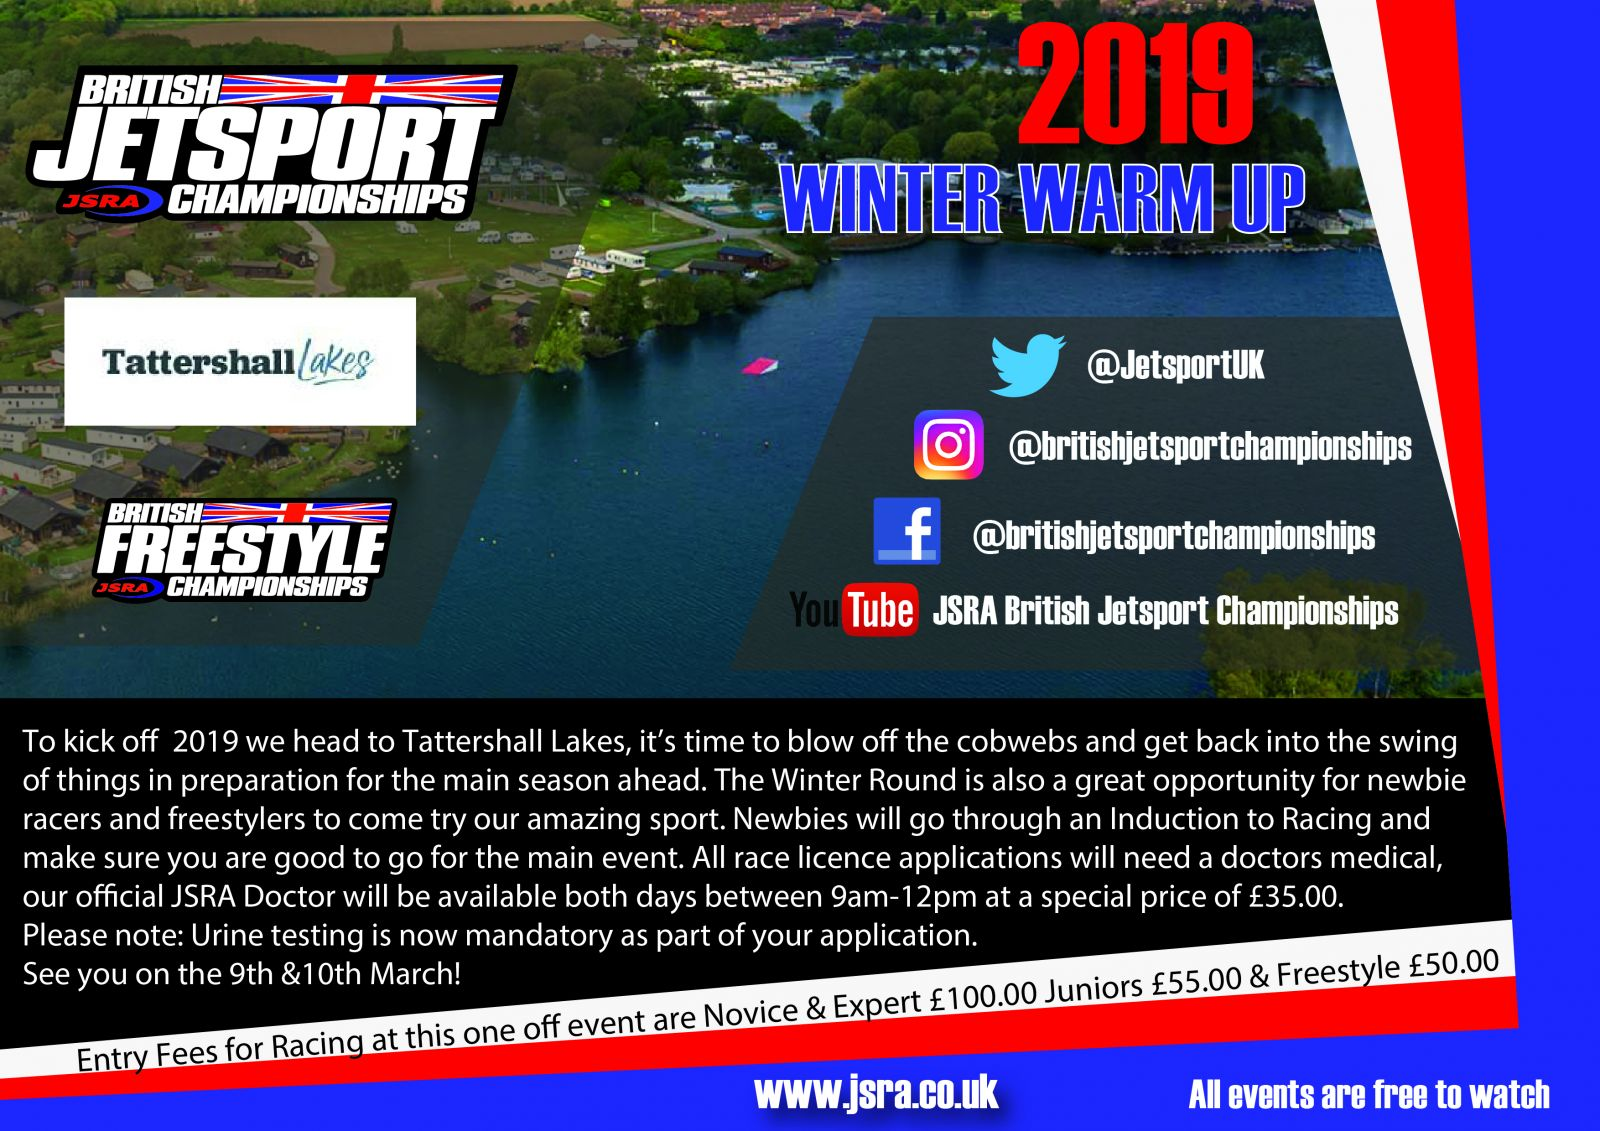 2019 Winter Warm Up At Tattershall Lakes 9th & 10th March